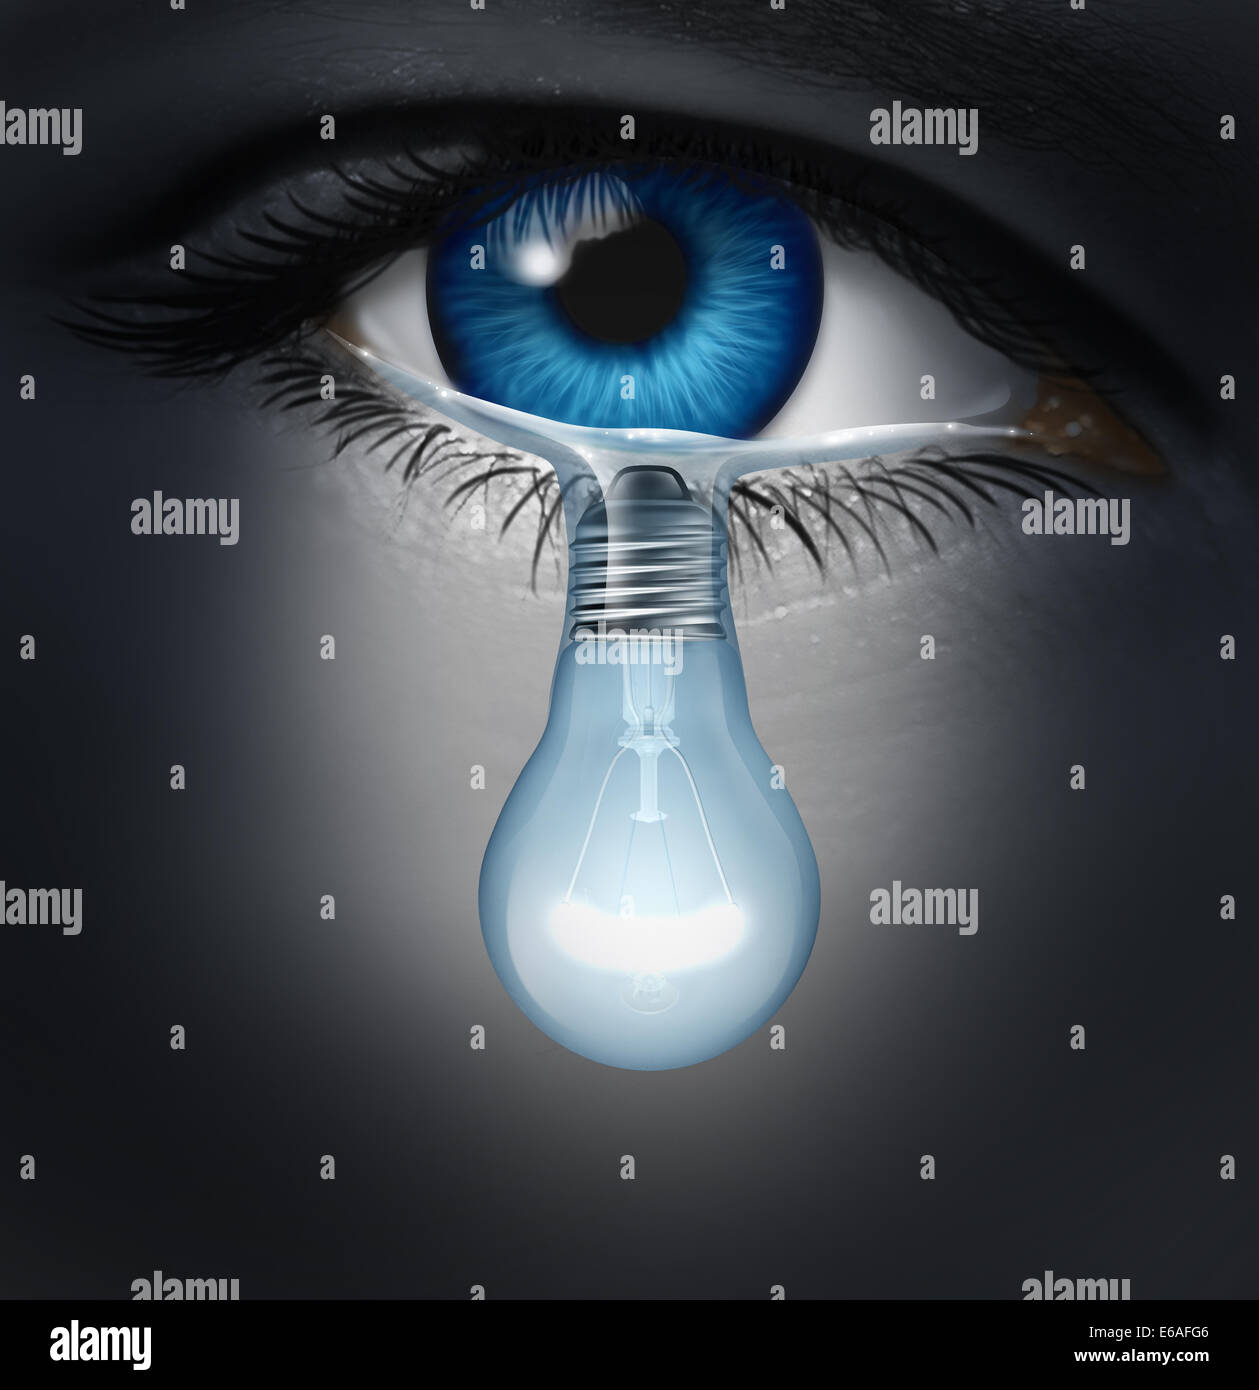 Depression therapy concept as a depressed human eye crying a tear shaped as a light bulb as a metaphor for solutions - Stock Image